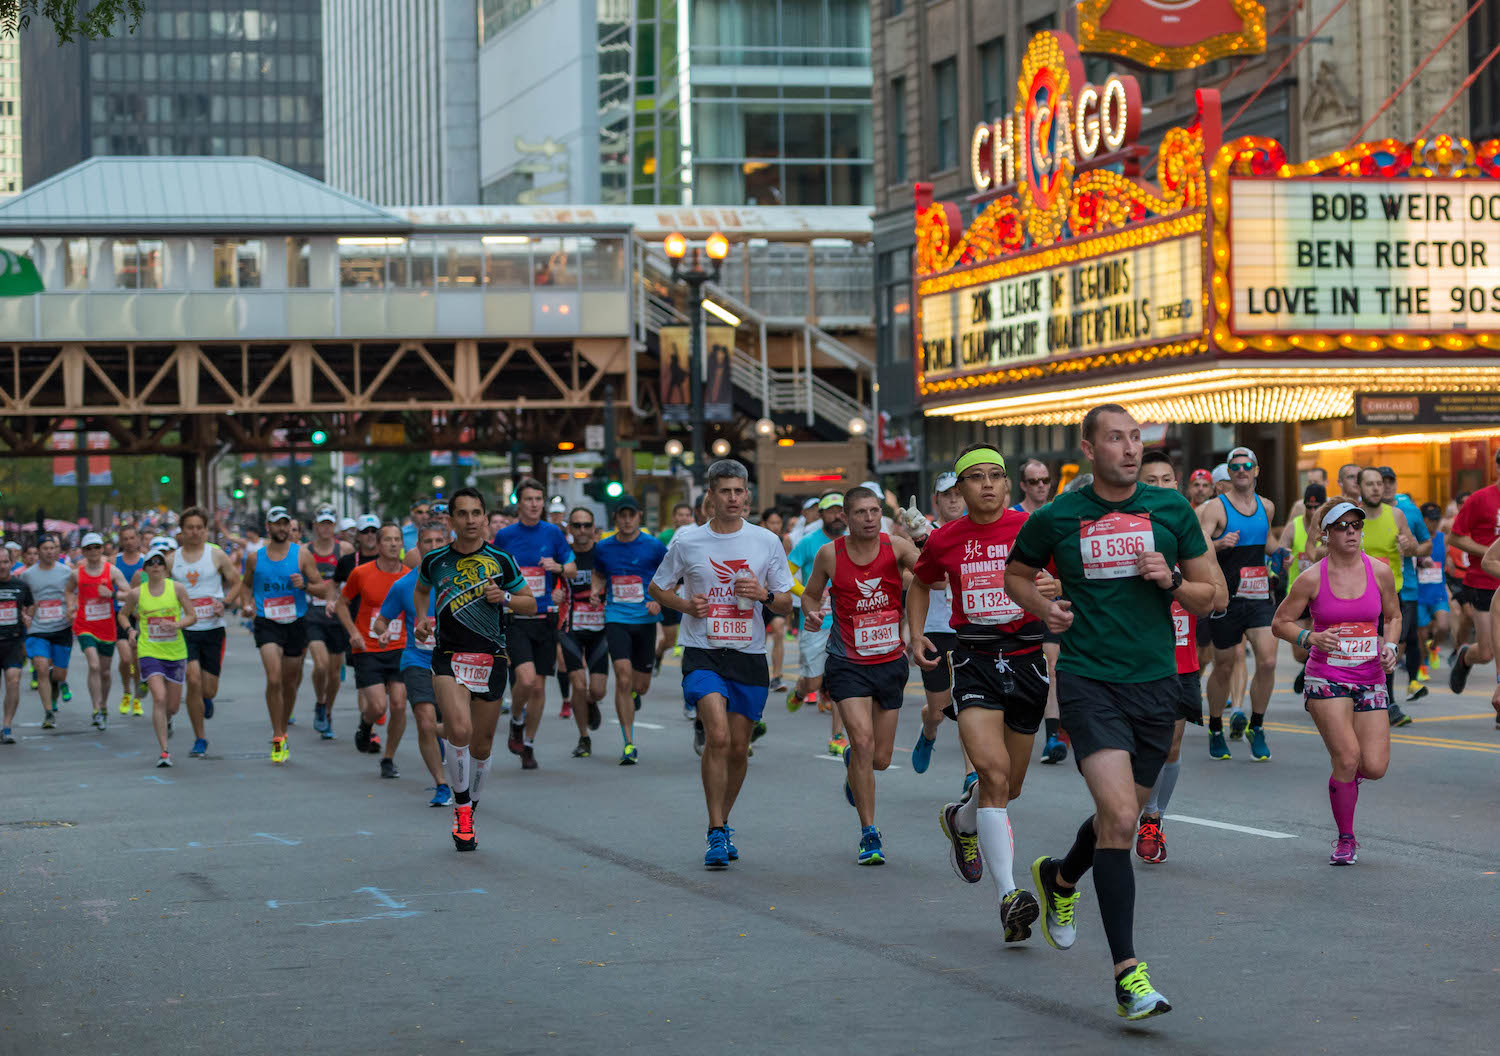 3 Things to Avoid before Your Big Race